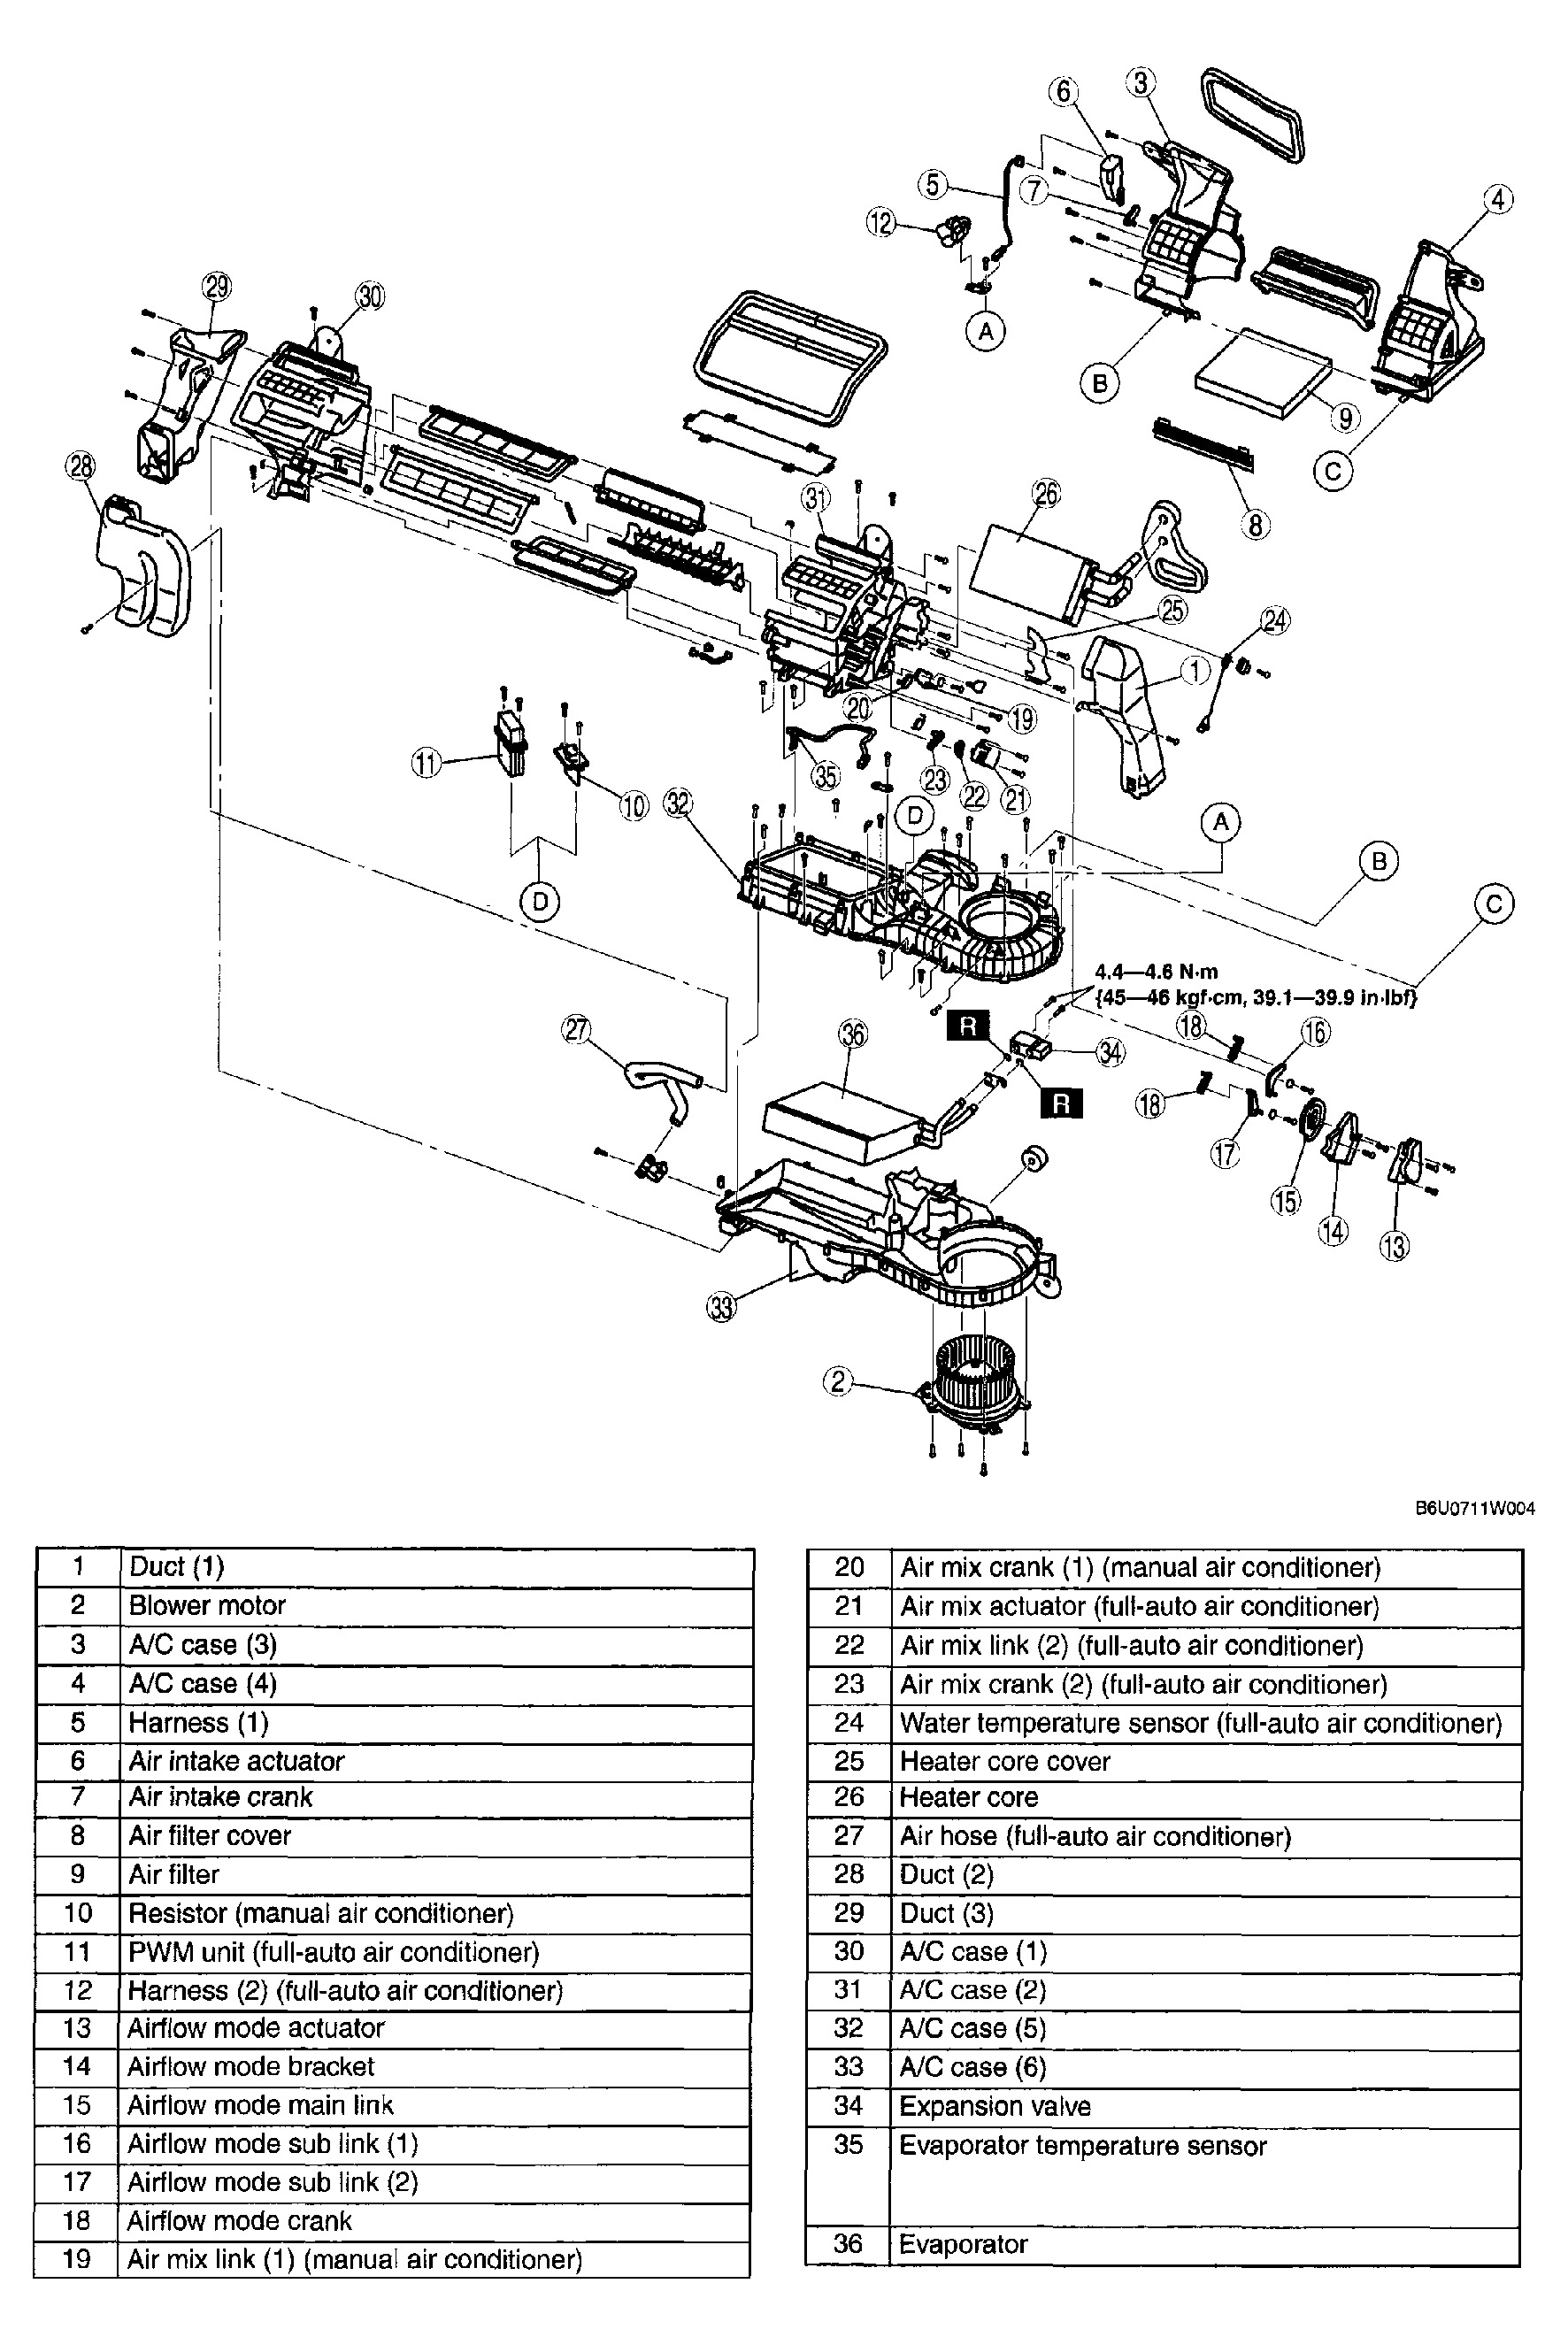 98 Mercury Grand Marquis Wiring Diagram Auto Electrical Ge Tpx24ppda Freezer Wire 1985 Mecury Alternator 49 2002 Air Suspension T2215465 Need Fuse Box 1992 Ford Ranger